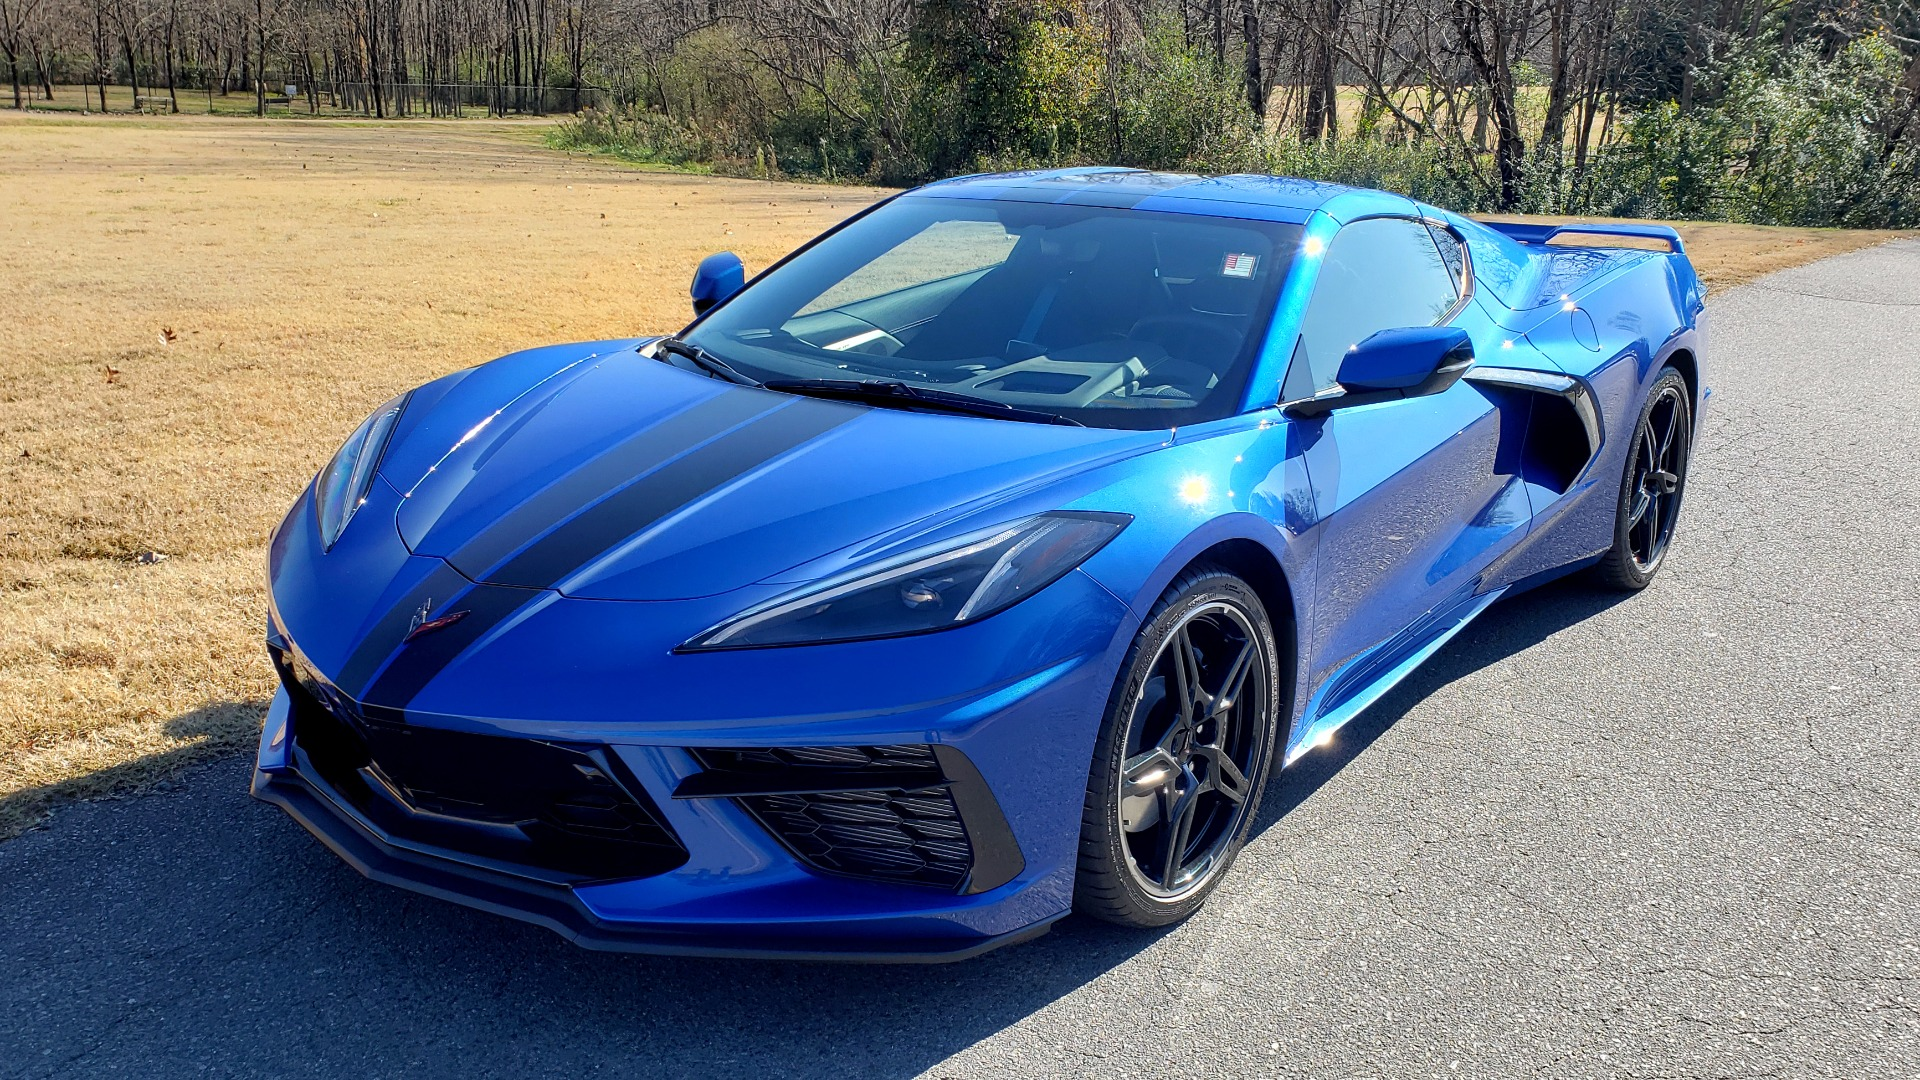 Used 2020 Chevrolet C8 CORVETTE STINGRAY 2LT COUPE / NAV / HUD / BOSE / GT2 SEATS / FRONT LIFT / REARVIEW for sale Sold at Formula Imports in Charlotte NC 28227 1